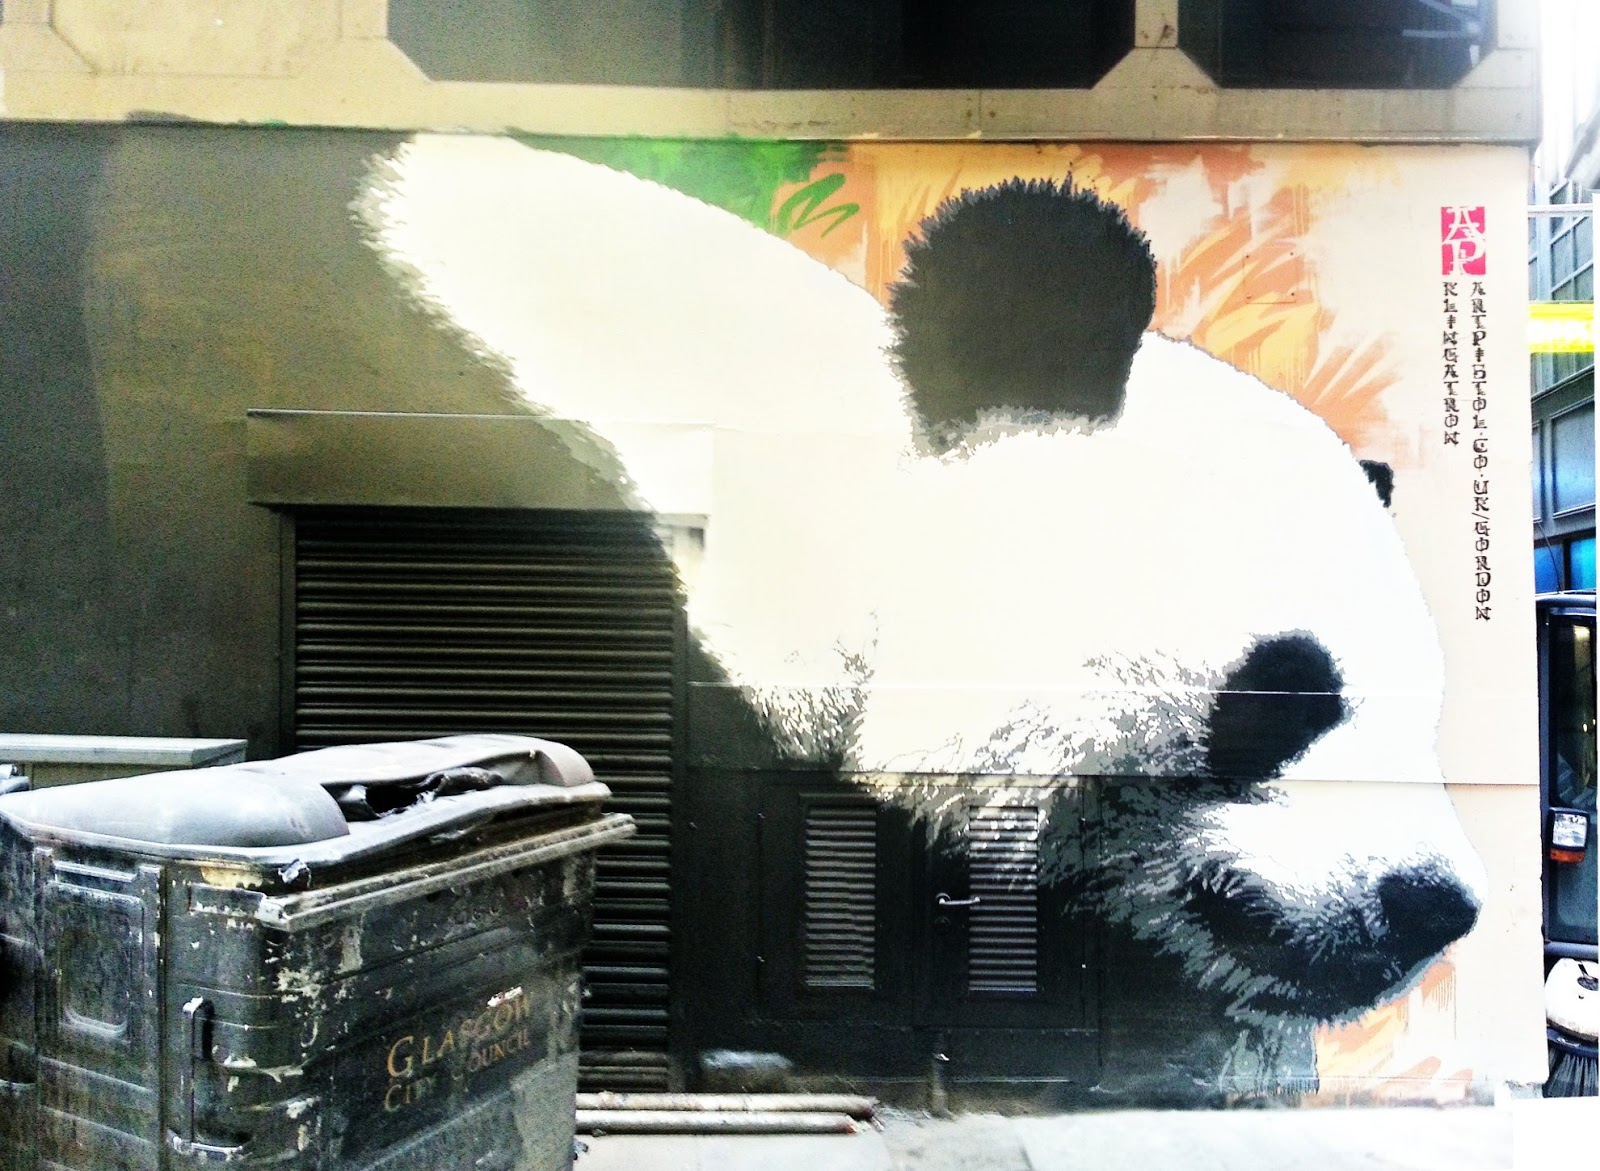 Gordon Lane Panda, Glasgow